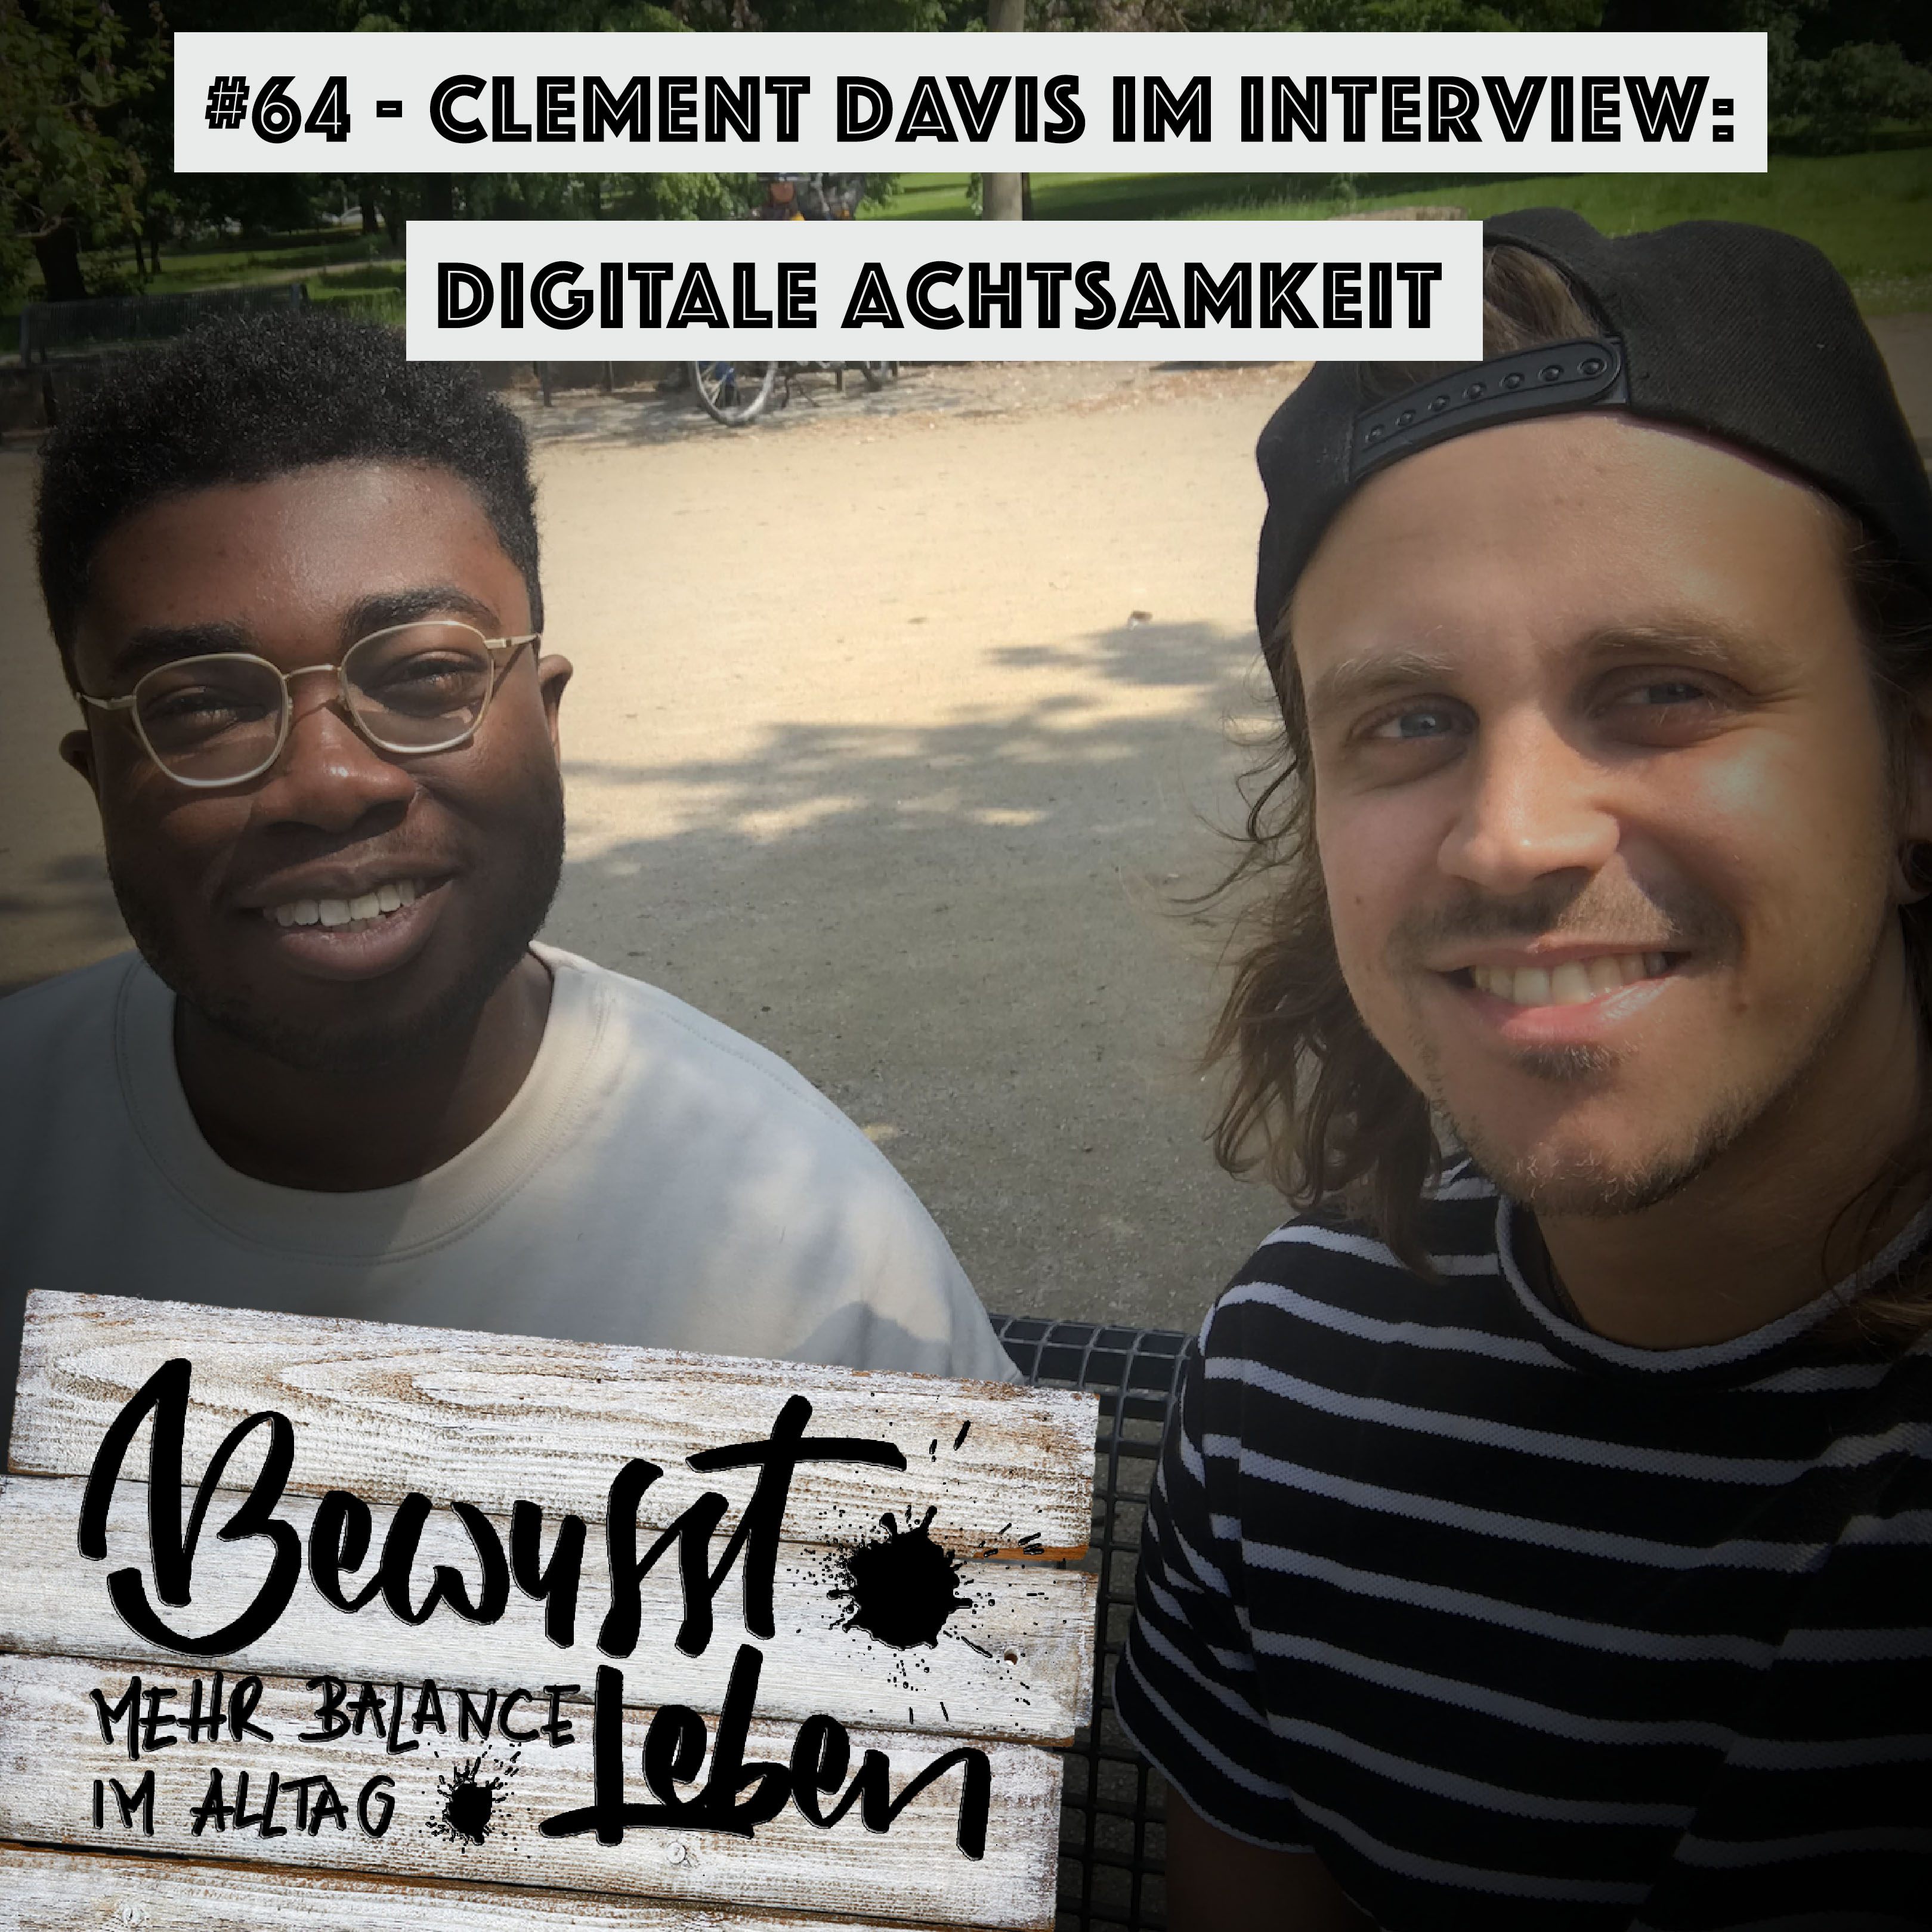 Clement Davis im Interview - Digitale Achtsamkeit